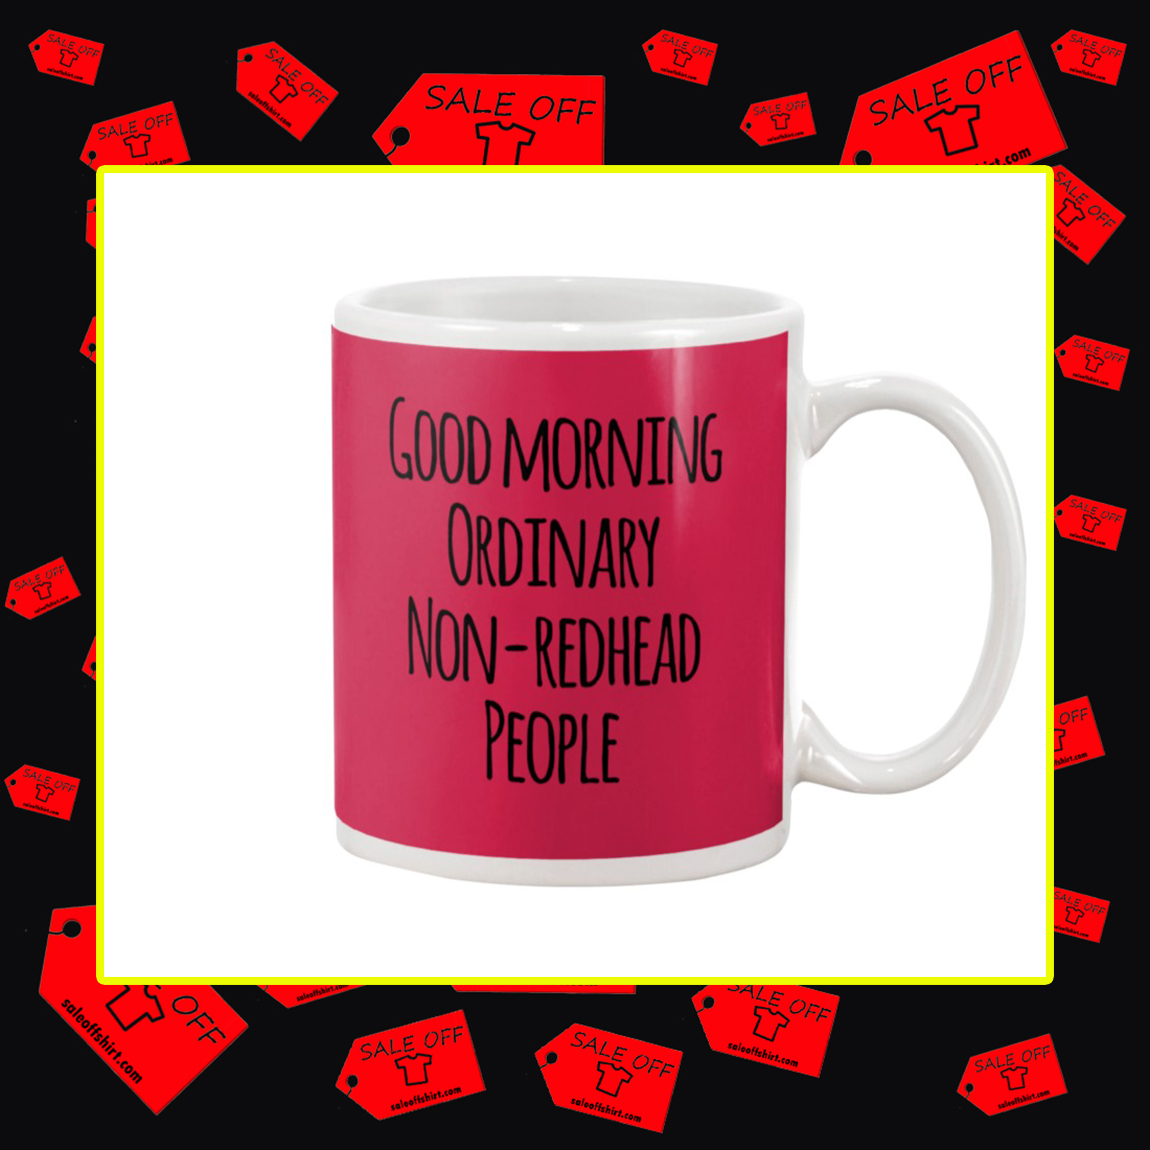 Good Morning Ordinary Non-Redhead People Mug- true red